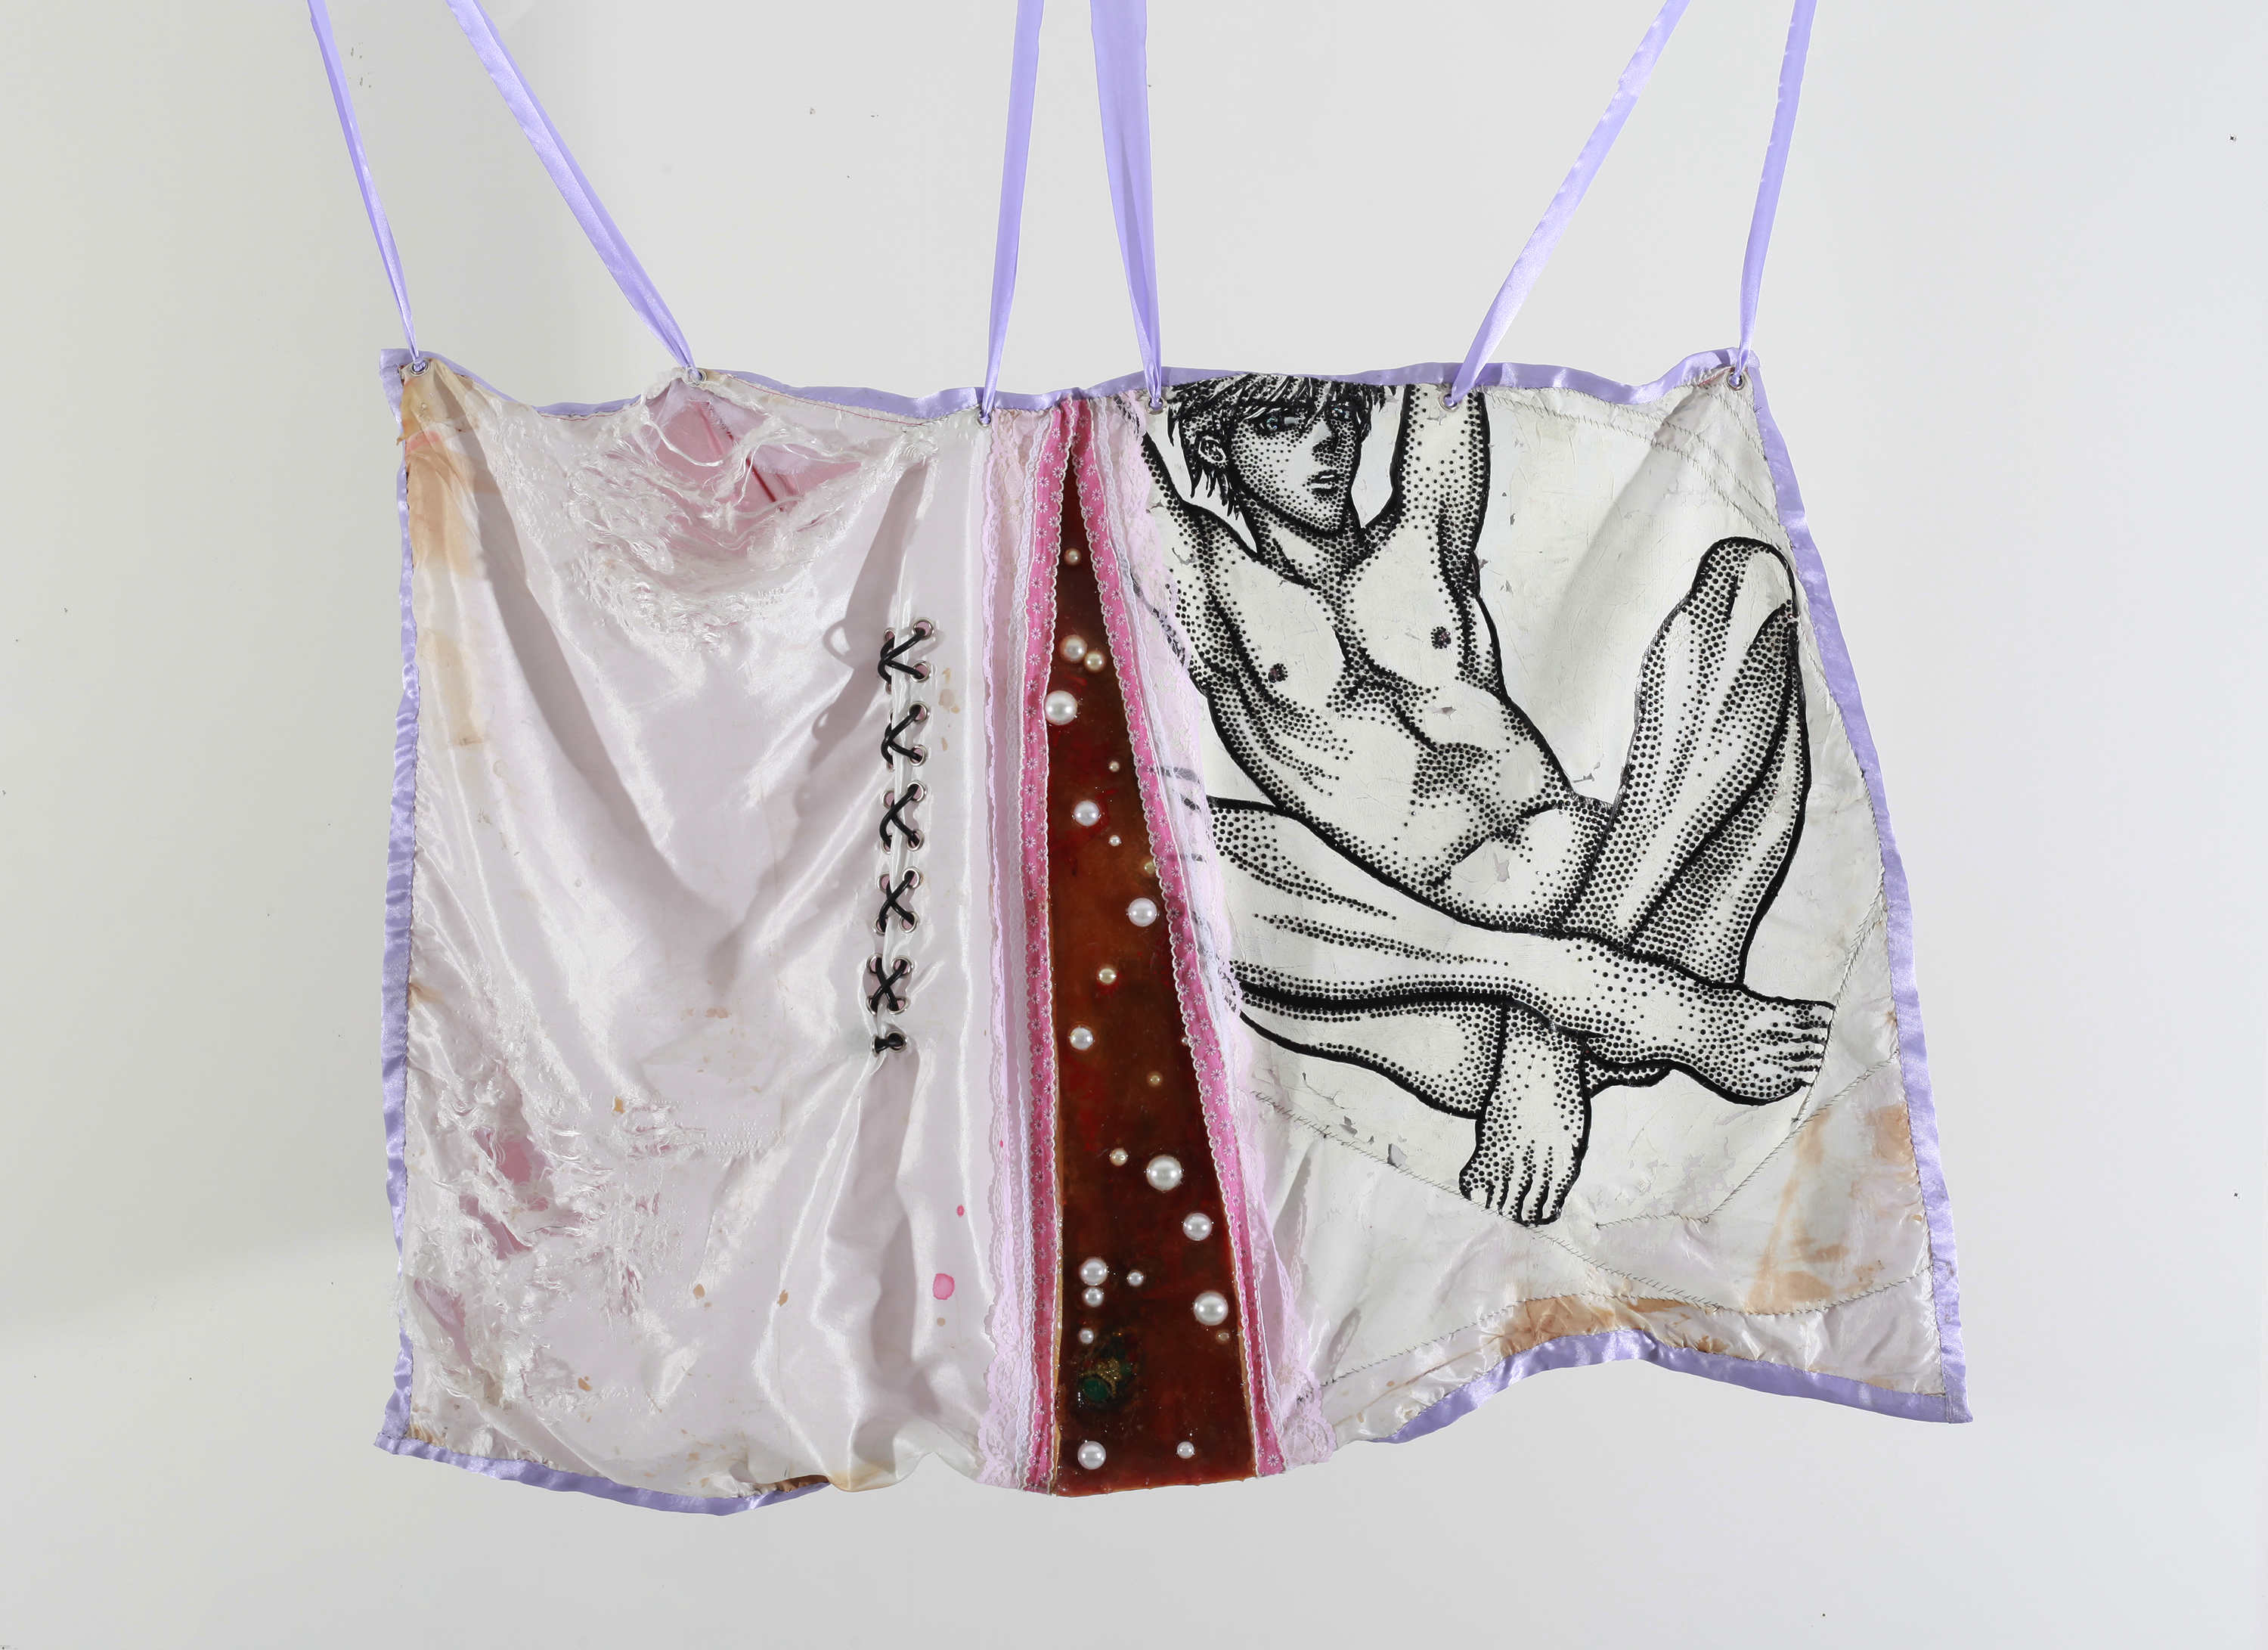 Mixed media work suspended by lilac ribbons, shows a nude male figure in black and white made of rhinestones